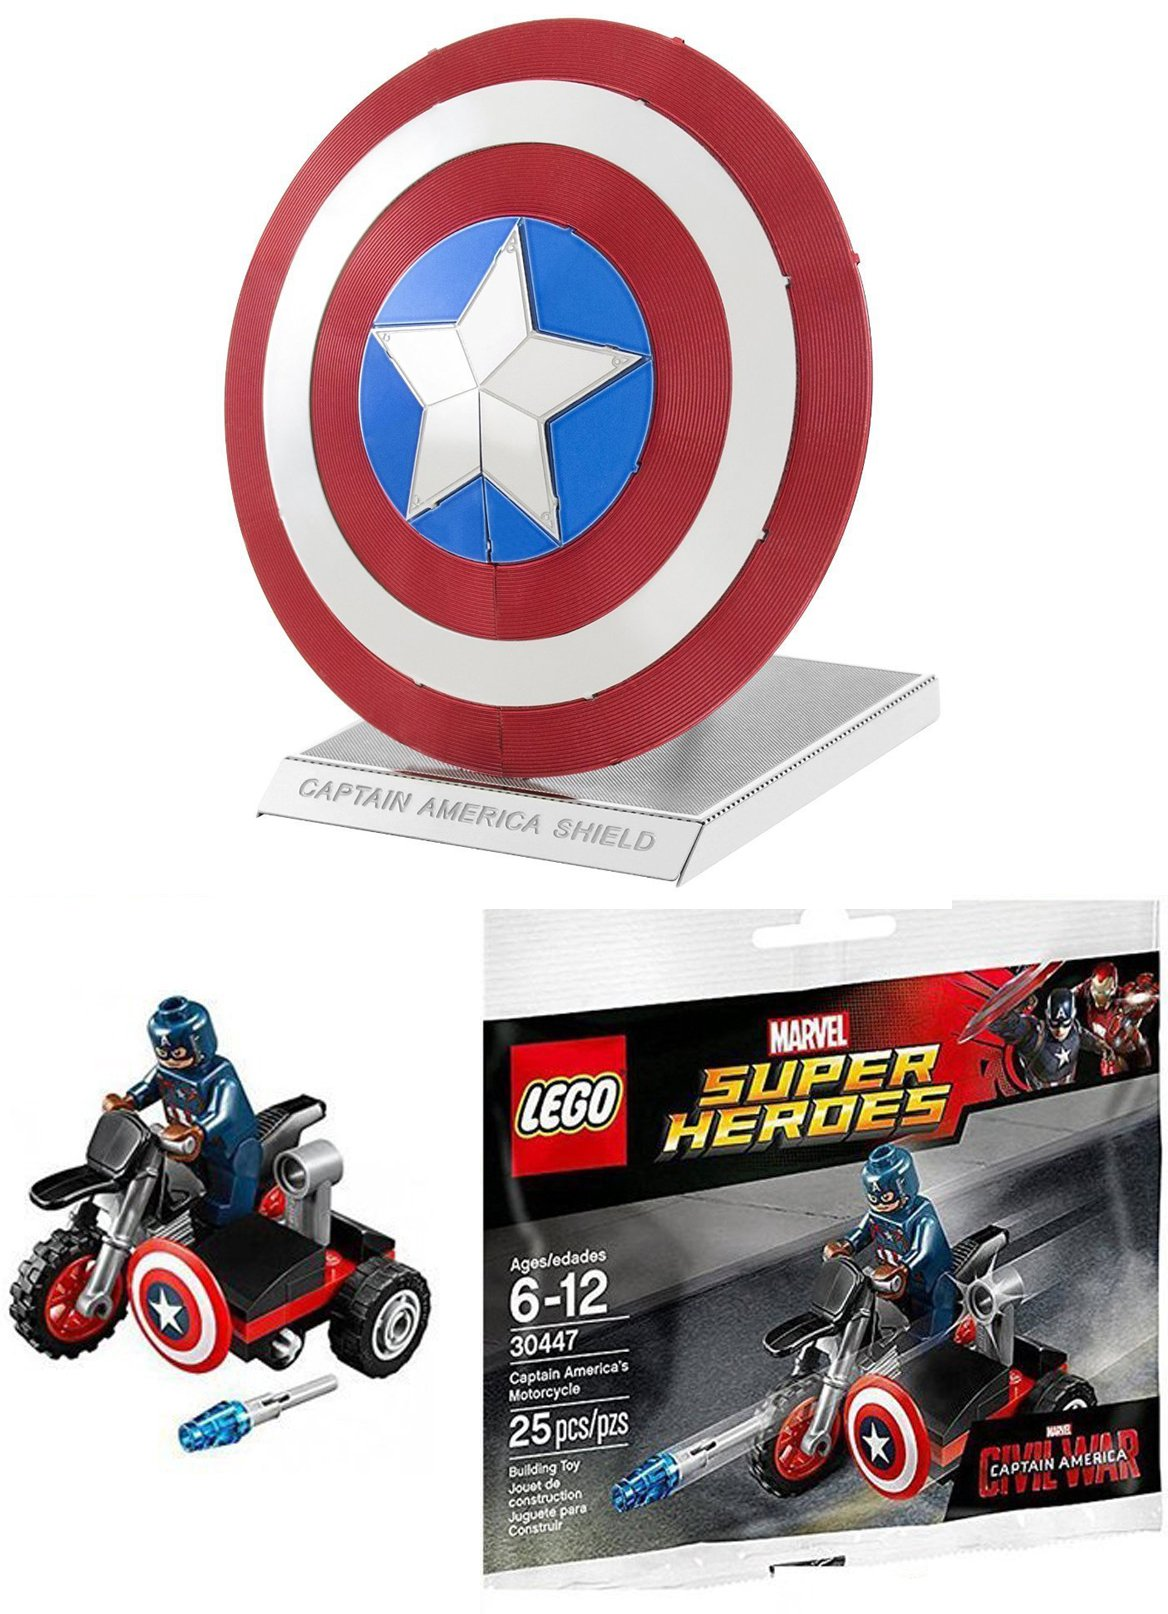 Lego Super Heroes: Civil War Captain America Motorcycle Mini Figure Marvel 3044 & Fascinations Metal Earth Marvel Captain America's Shield 3D Metal Model Kit